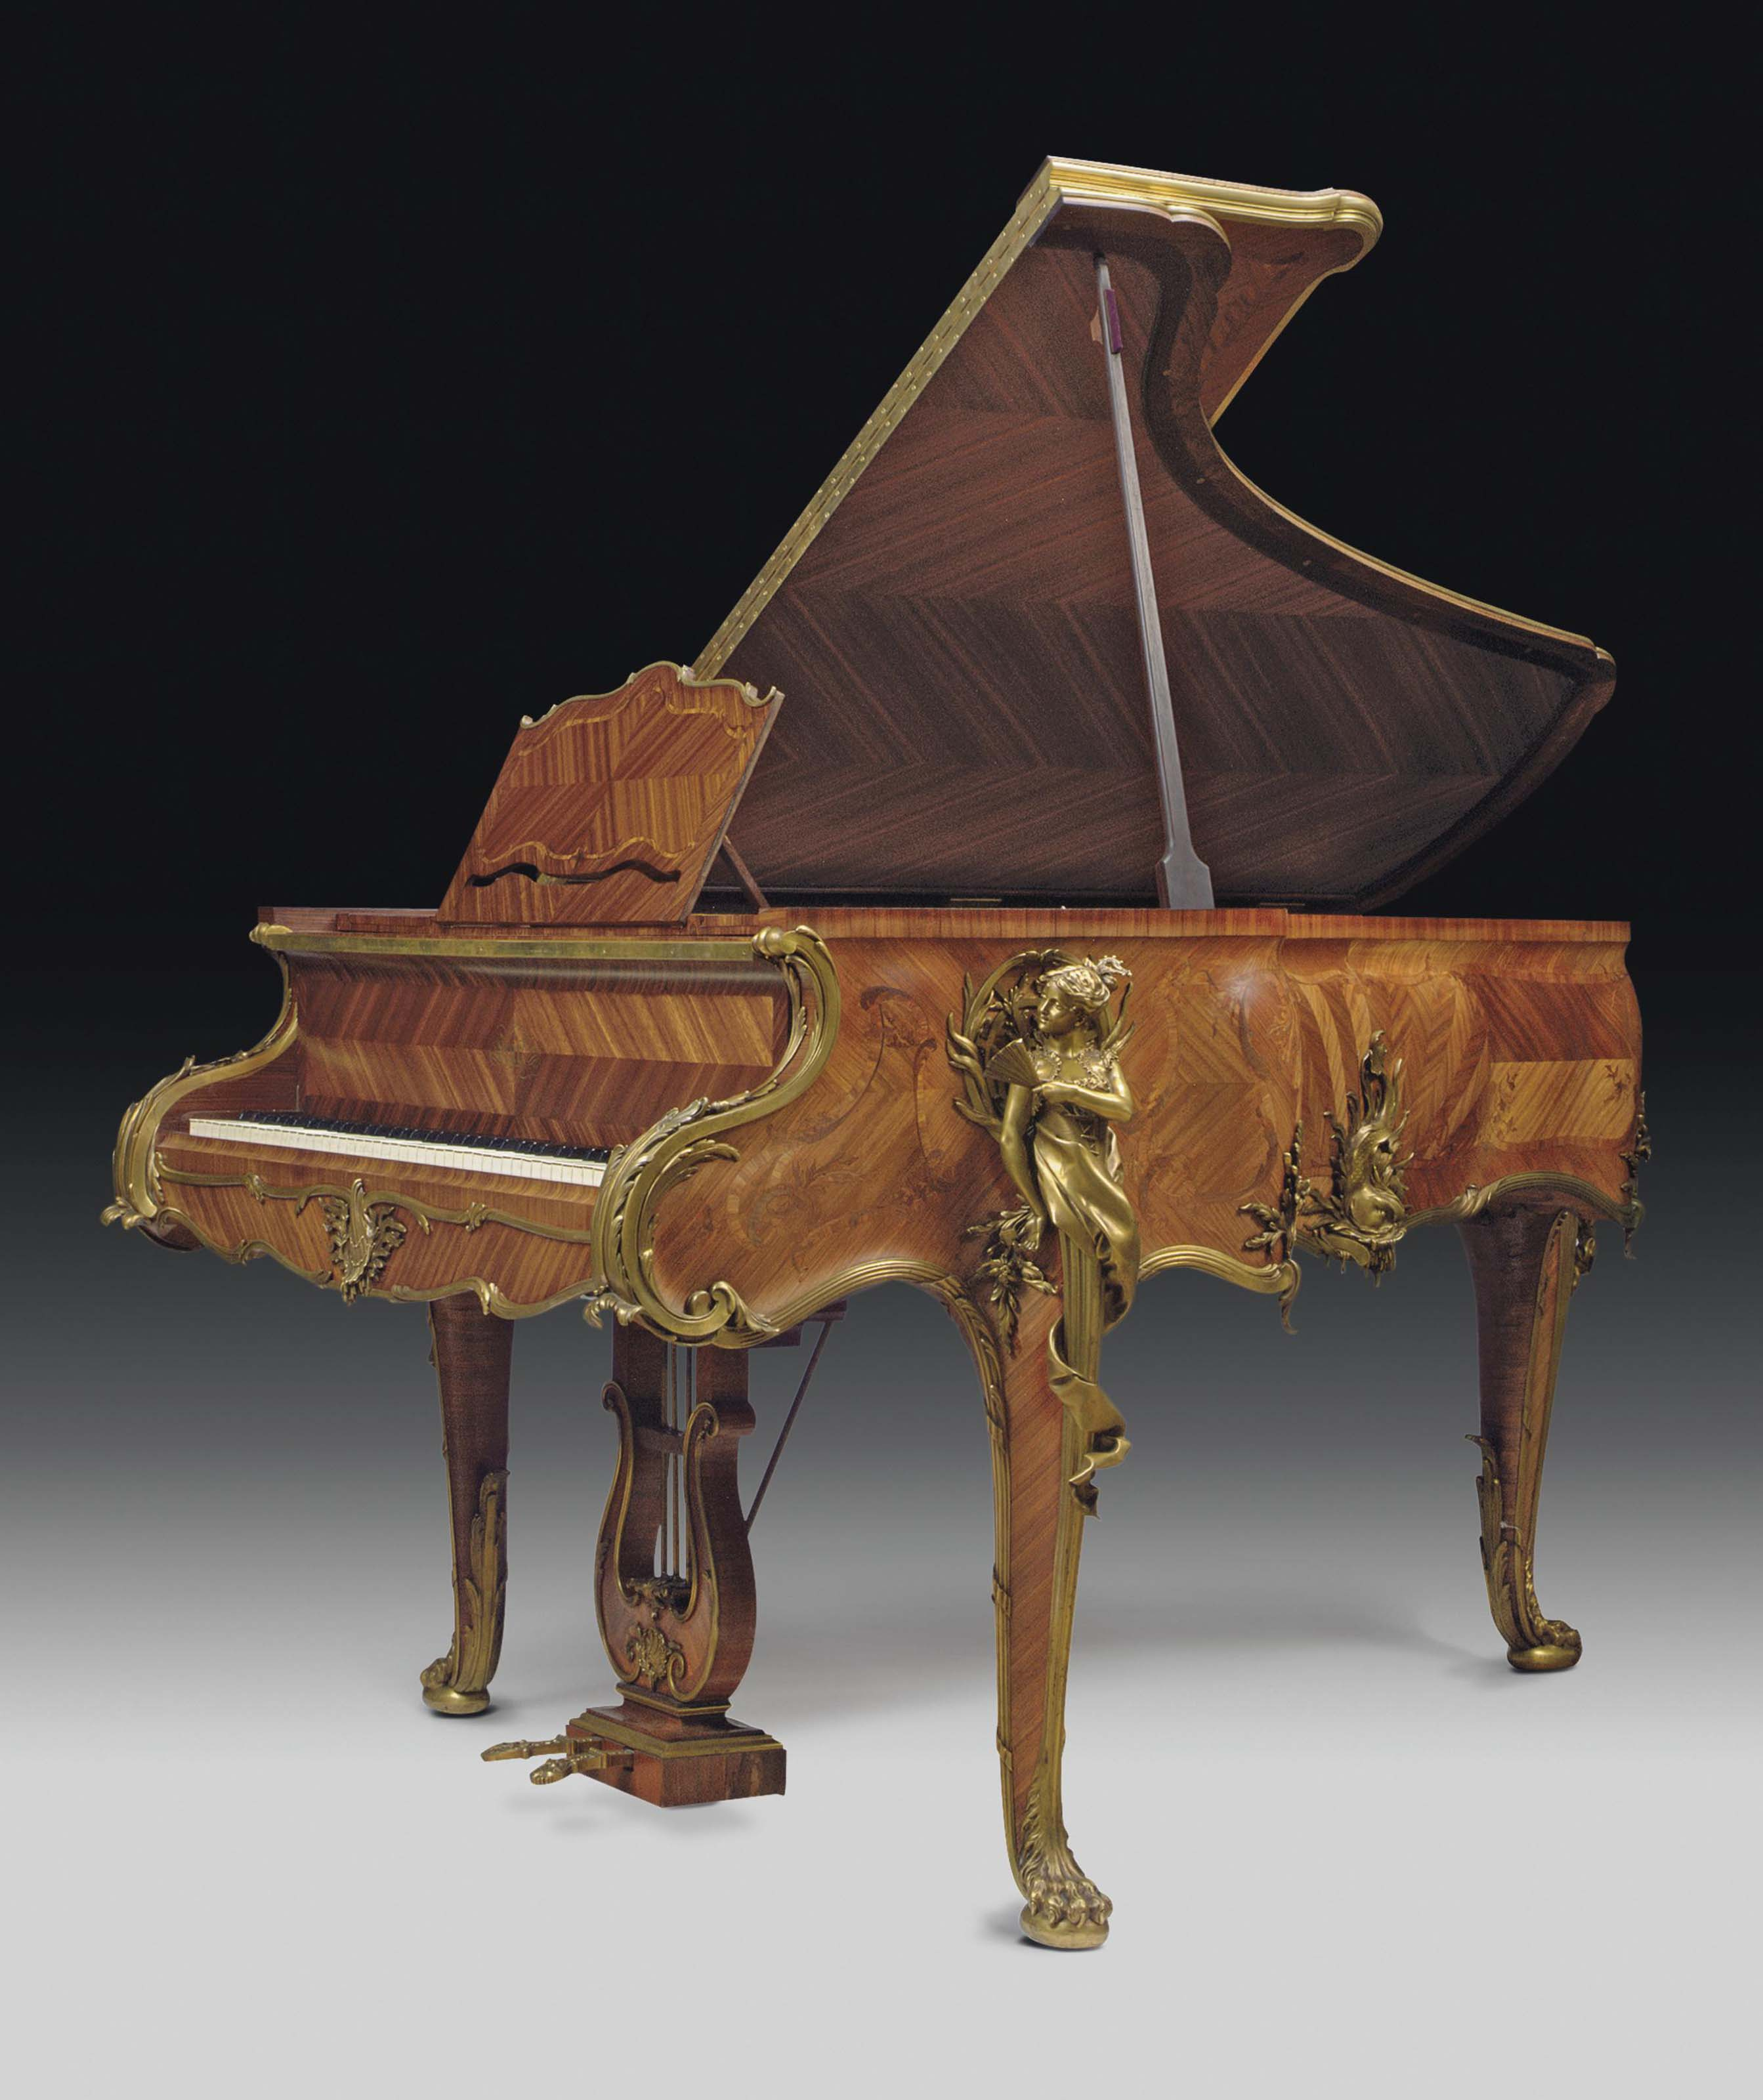 A HIGHLY IMPORTANT FRENCH ORMOLU-MOUNTED KINGWOOD AND SATINE MARQUETRY AND PARQUETRY PIANO A QUEUE